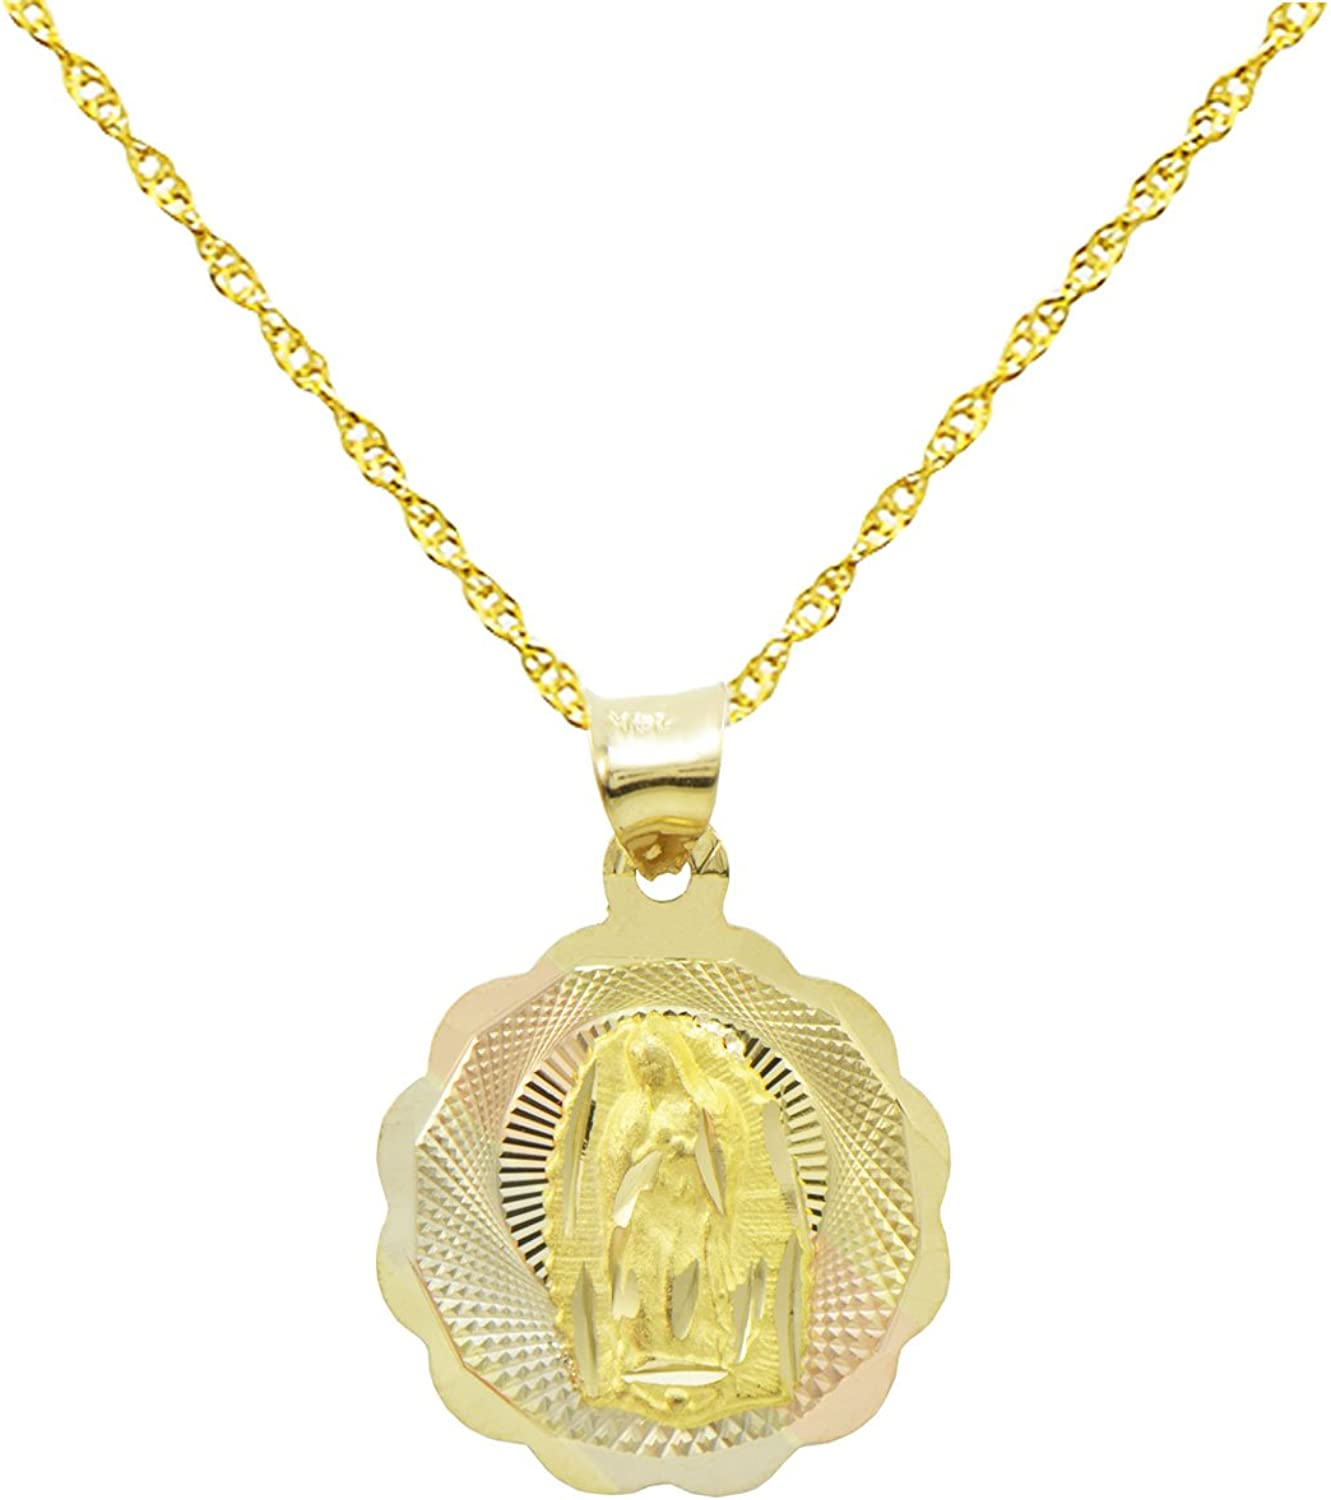 14K Tri-Color Gold Virgin Mary Guadalupe Charm Pendant 0.8 inches